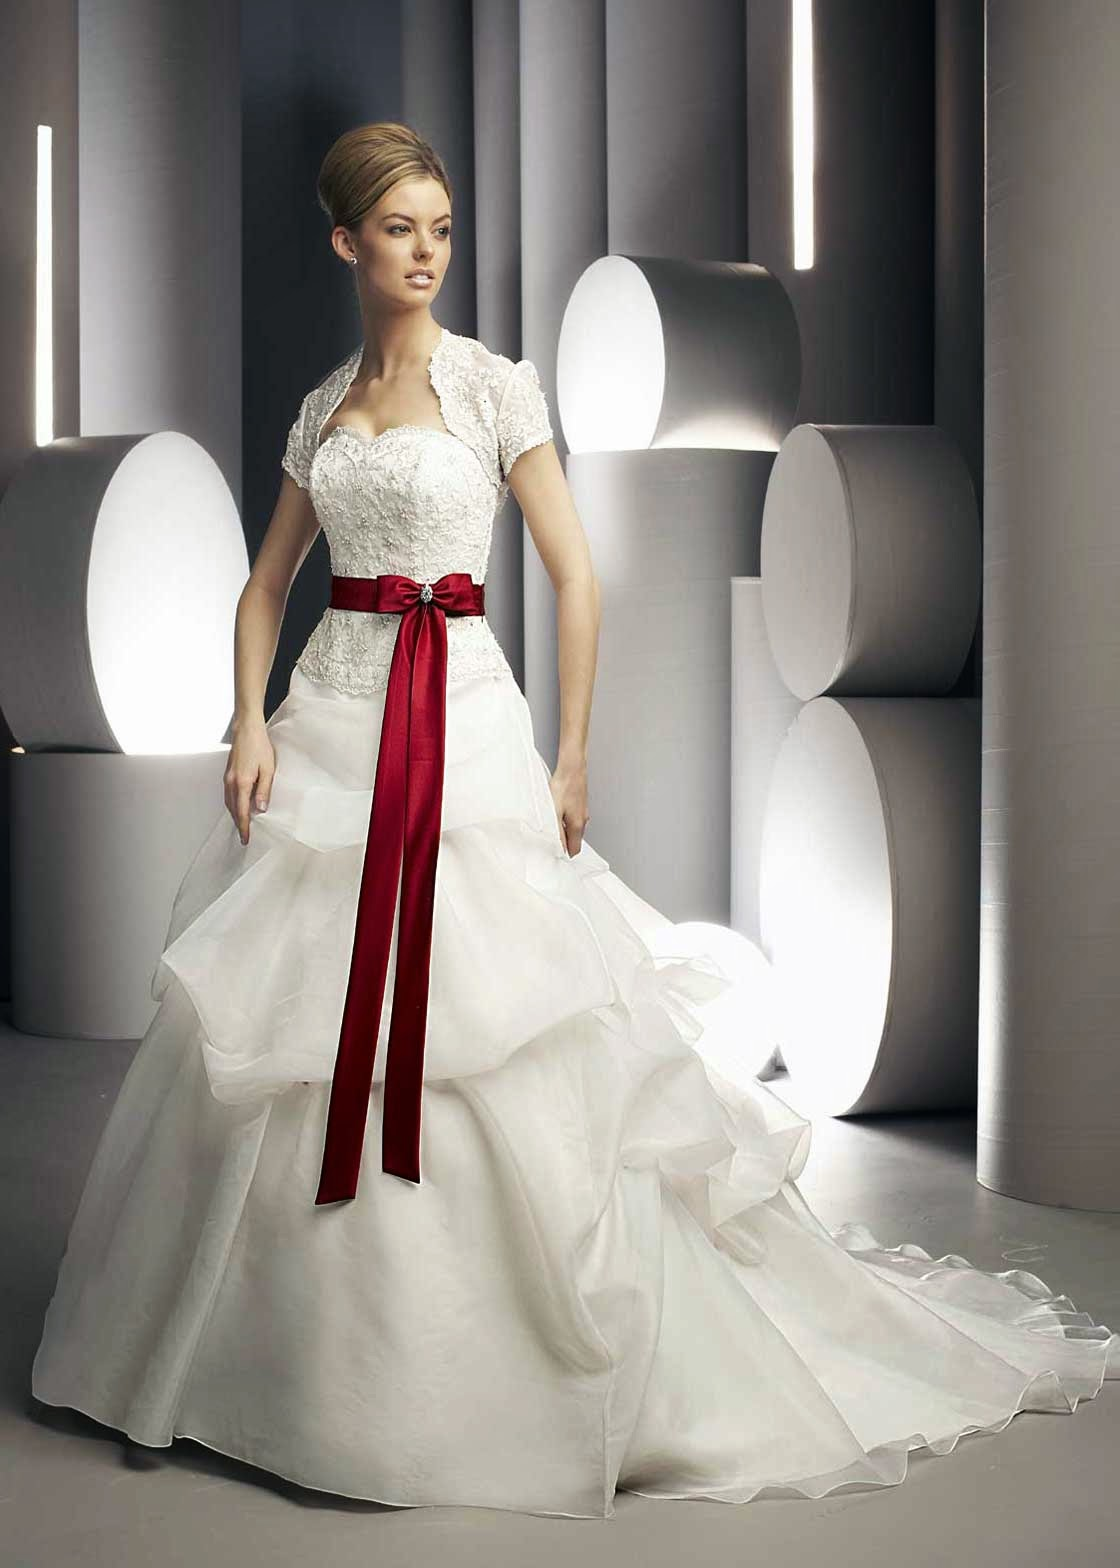 Colored Wedding Dresses With Sleeves Photos HD Concepts Ideas